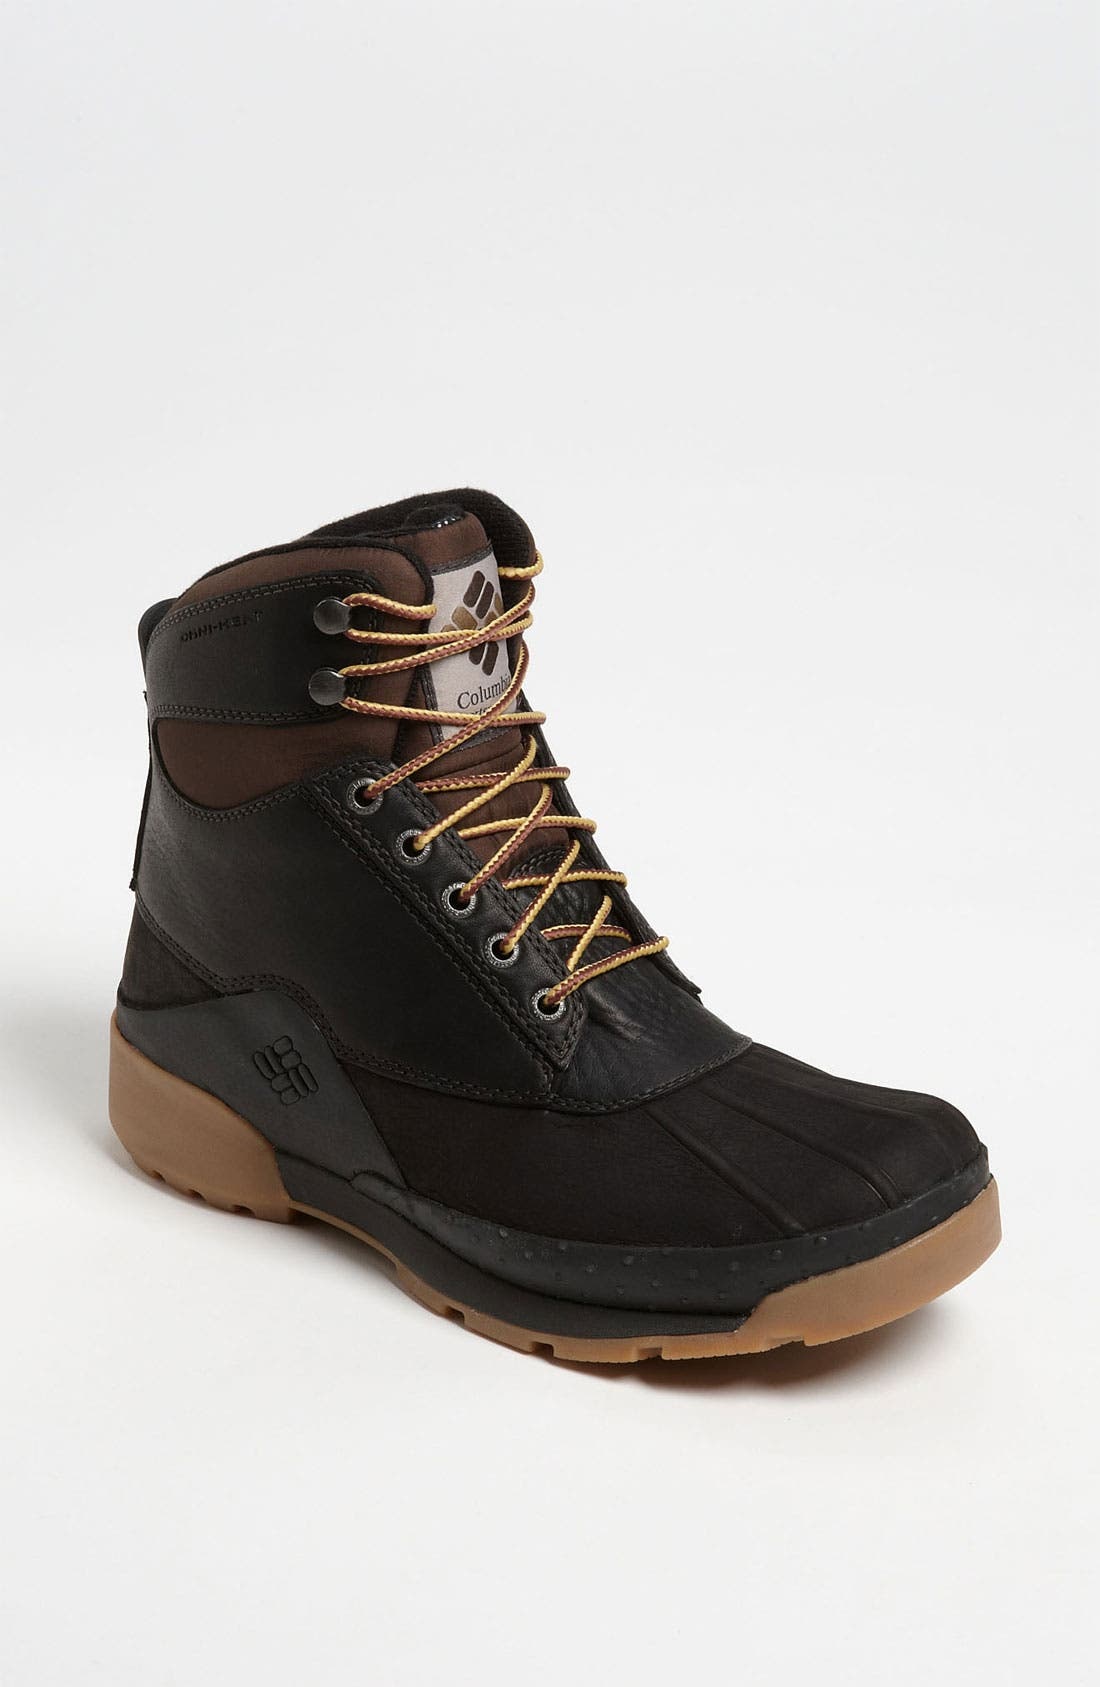 Alternate Image 1 Selected - Columbia 'Bugaboot™ Original' Snow Boot (Online Only)